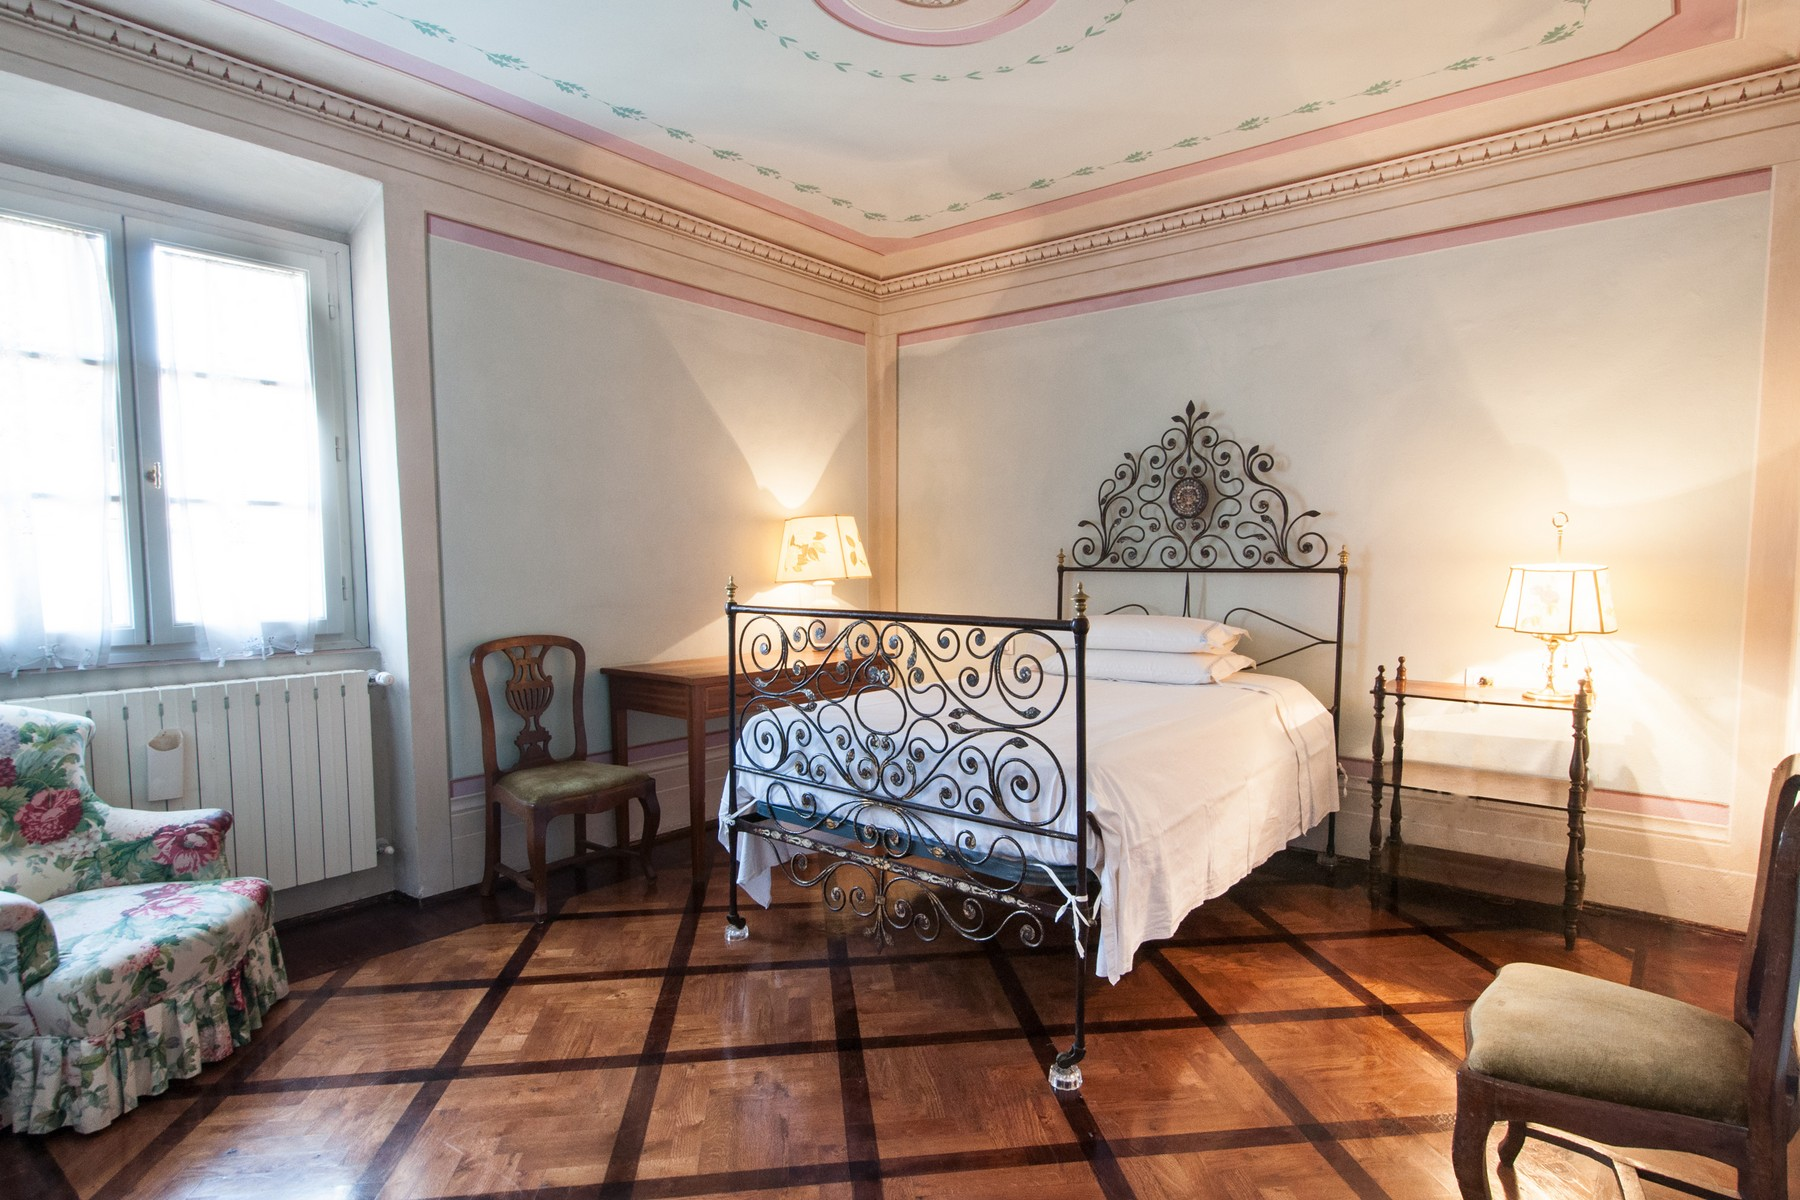 Additional photo for property listing at Prestigious apartment with frescoes Piazza San Francesco Prato, Prato 59100 Italy